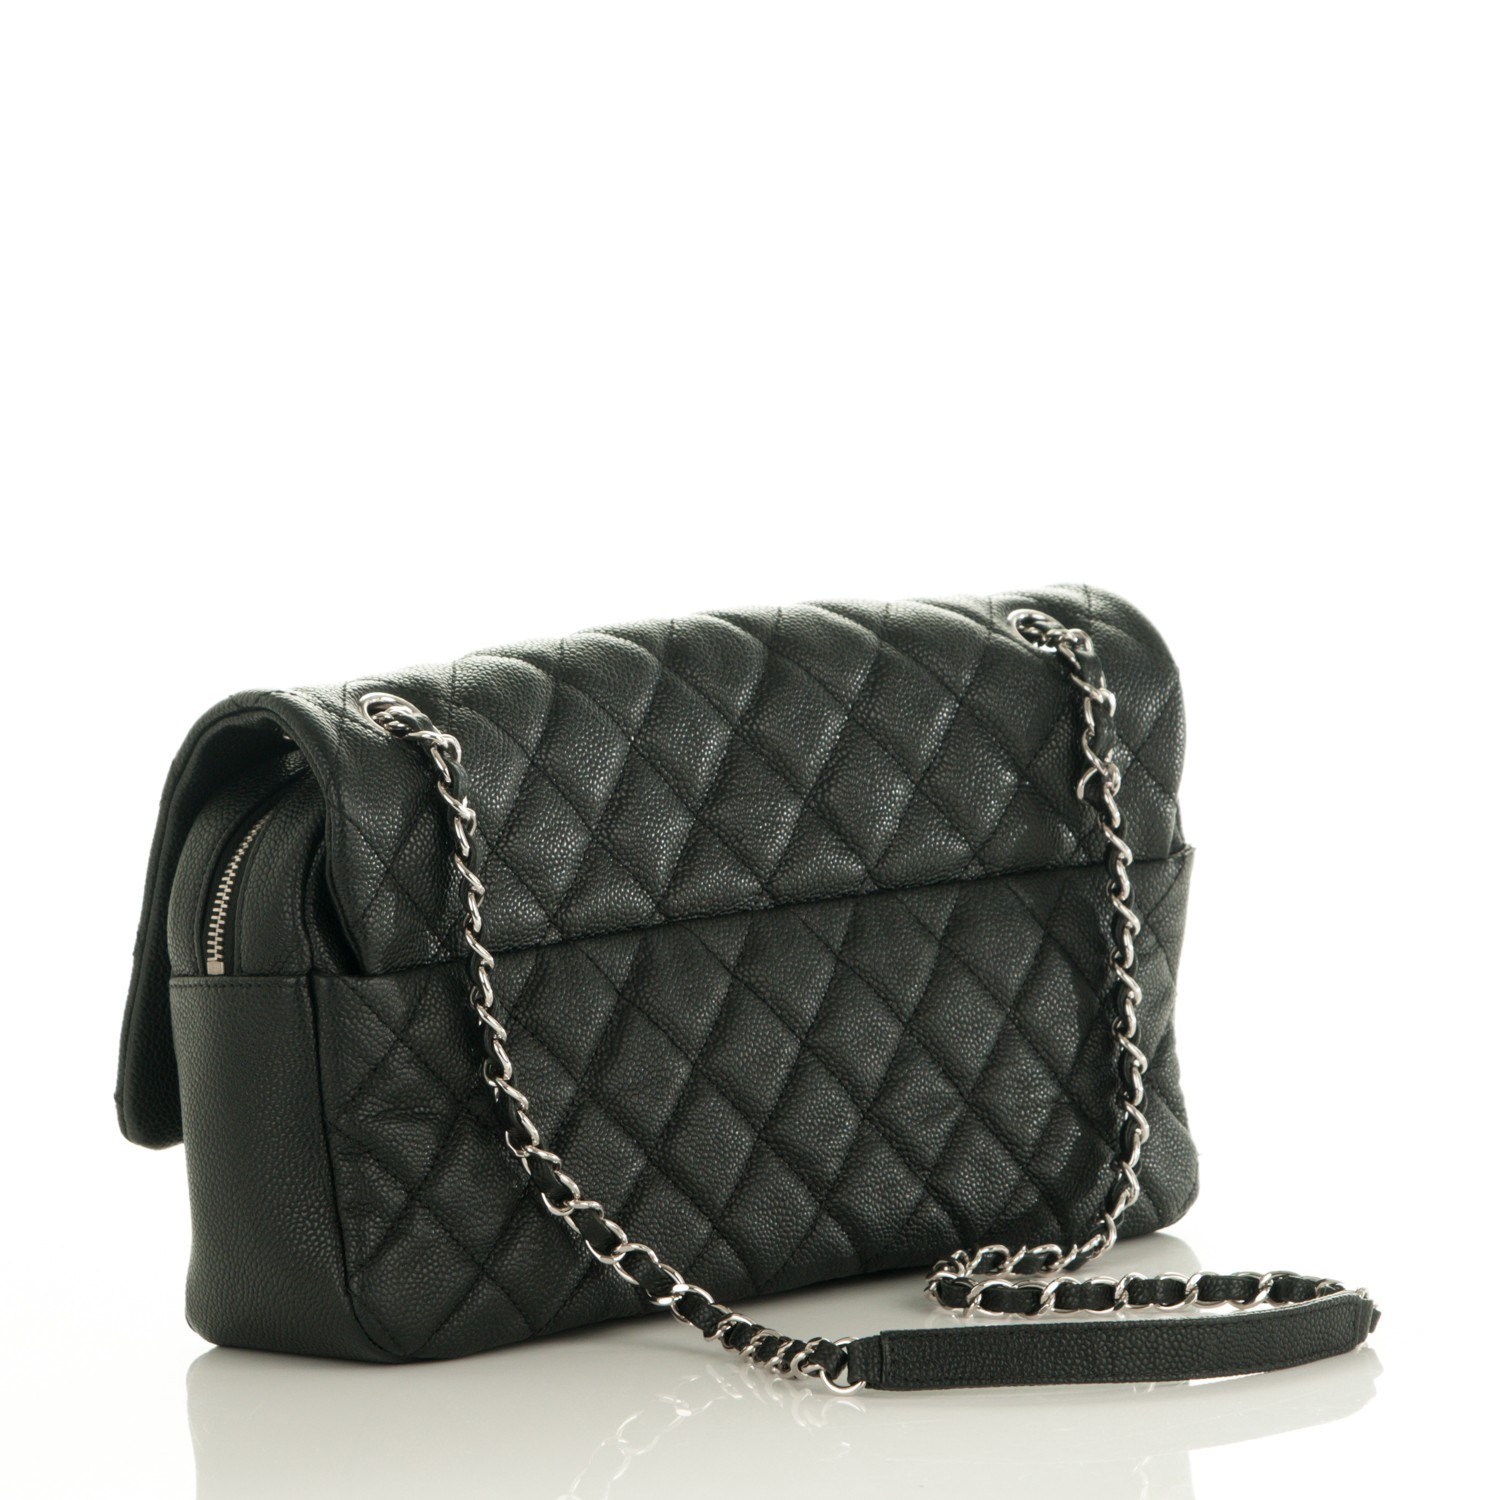 6d94f9c25fac CHANEL Caviar Quilted Jumbo Easy Flap Black. Empty. Pinch Zoom. ‹ › ‹ ›